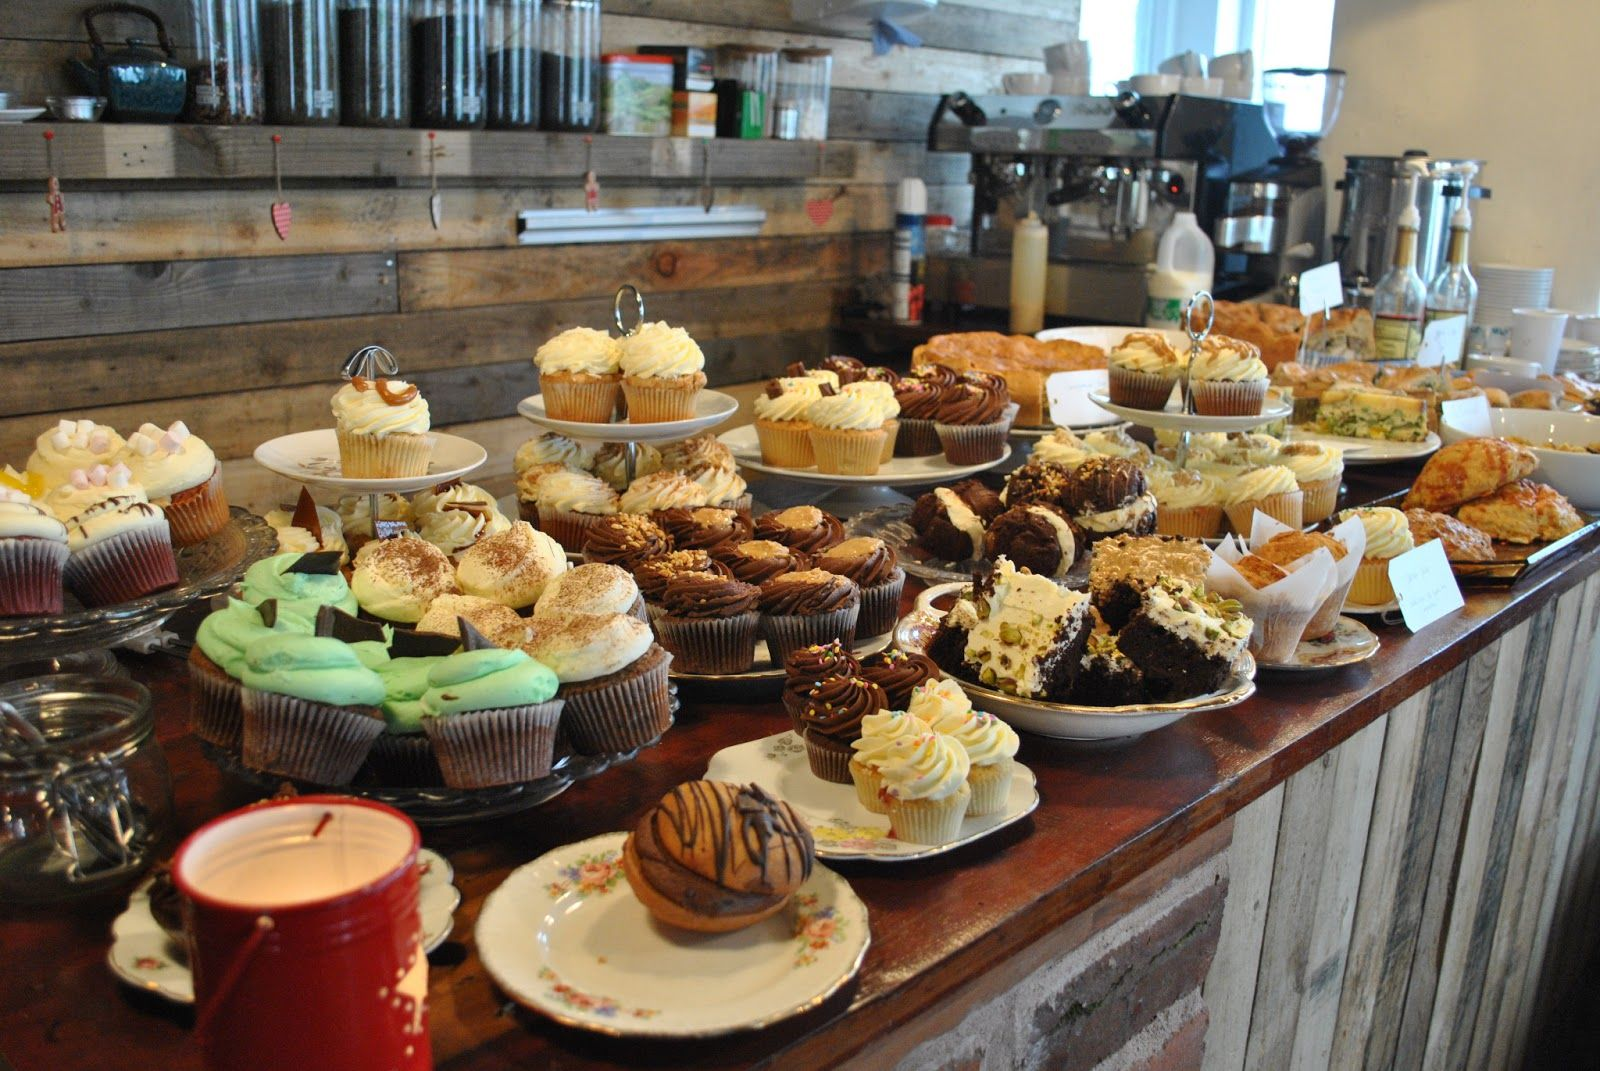 Cake Display Inside The Cafe Pinterest Cake Cafes And Bakeries